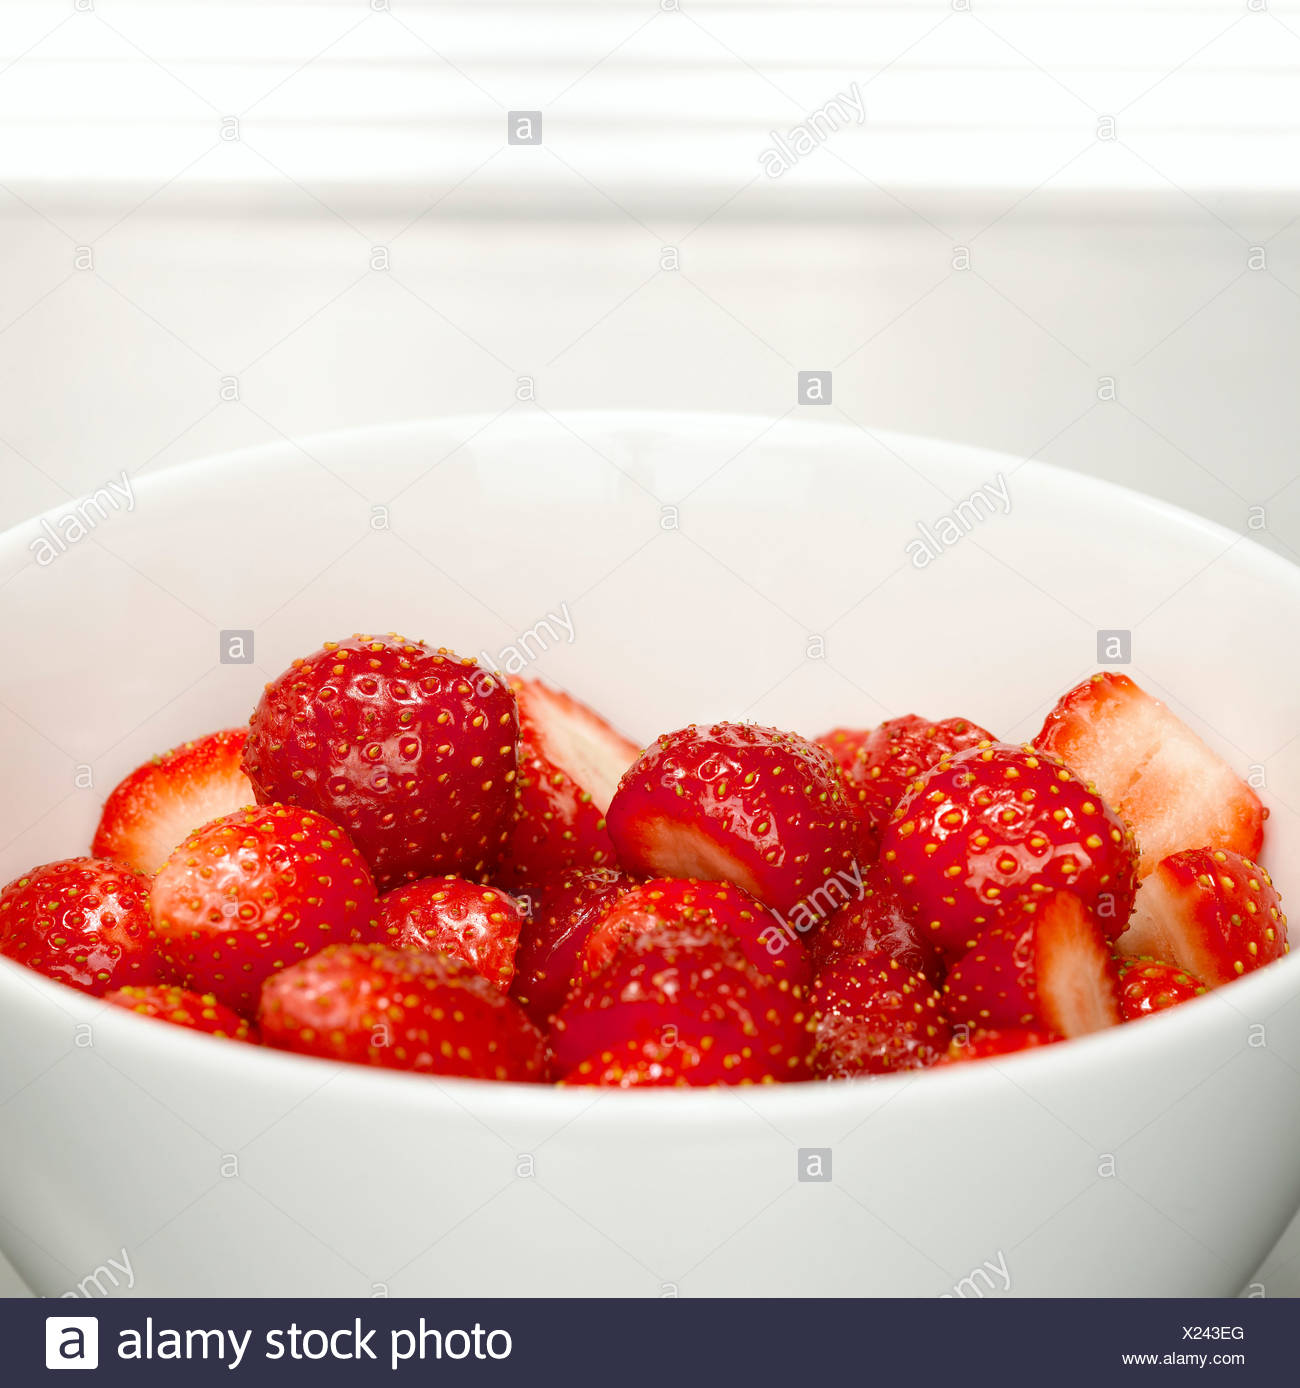 Fresh strawberries in bowl, close-up - Stock Image